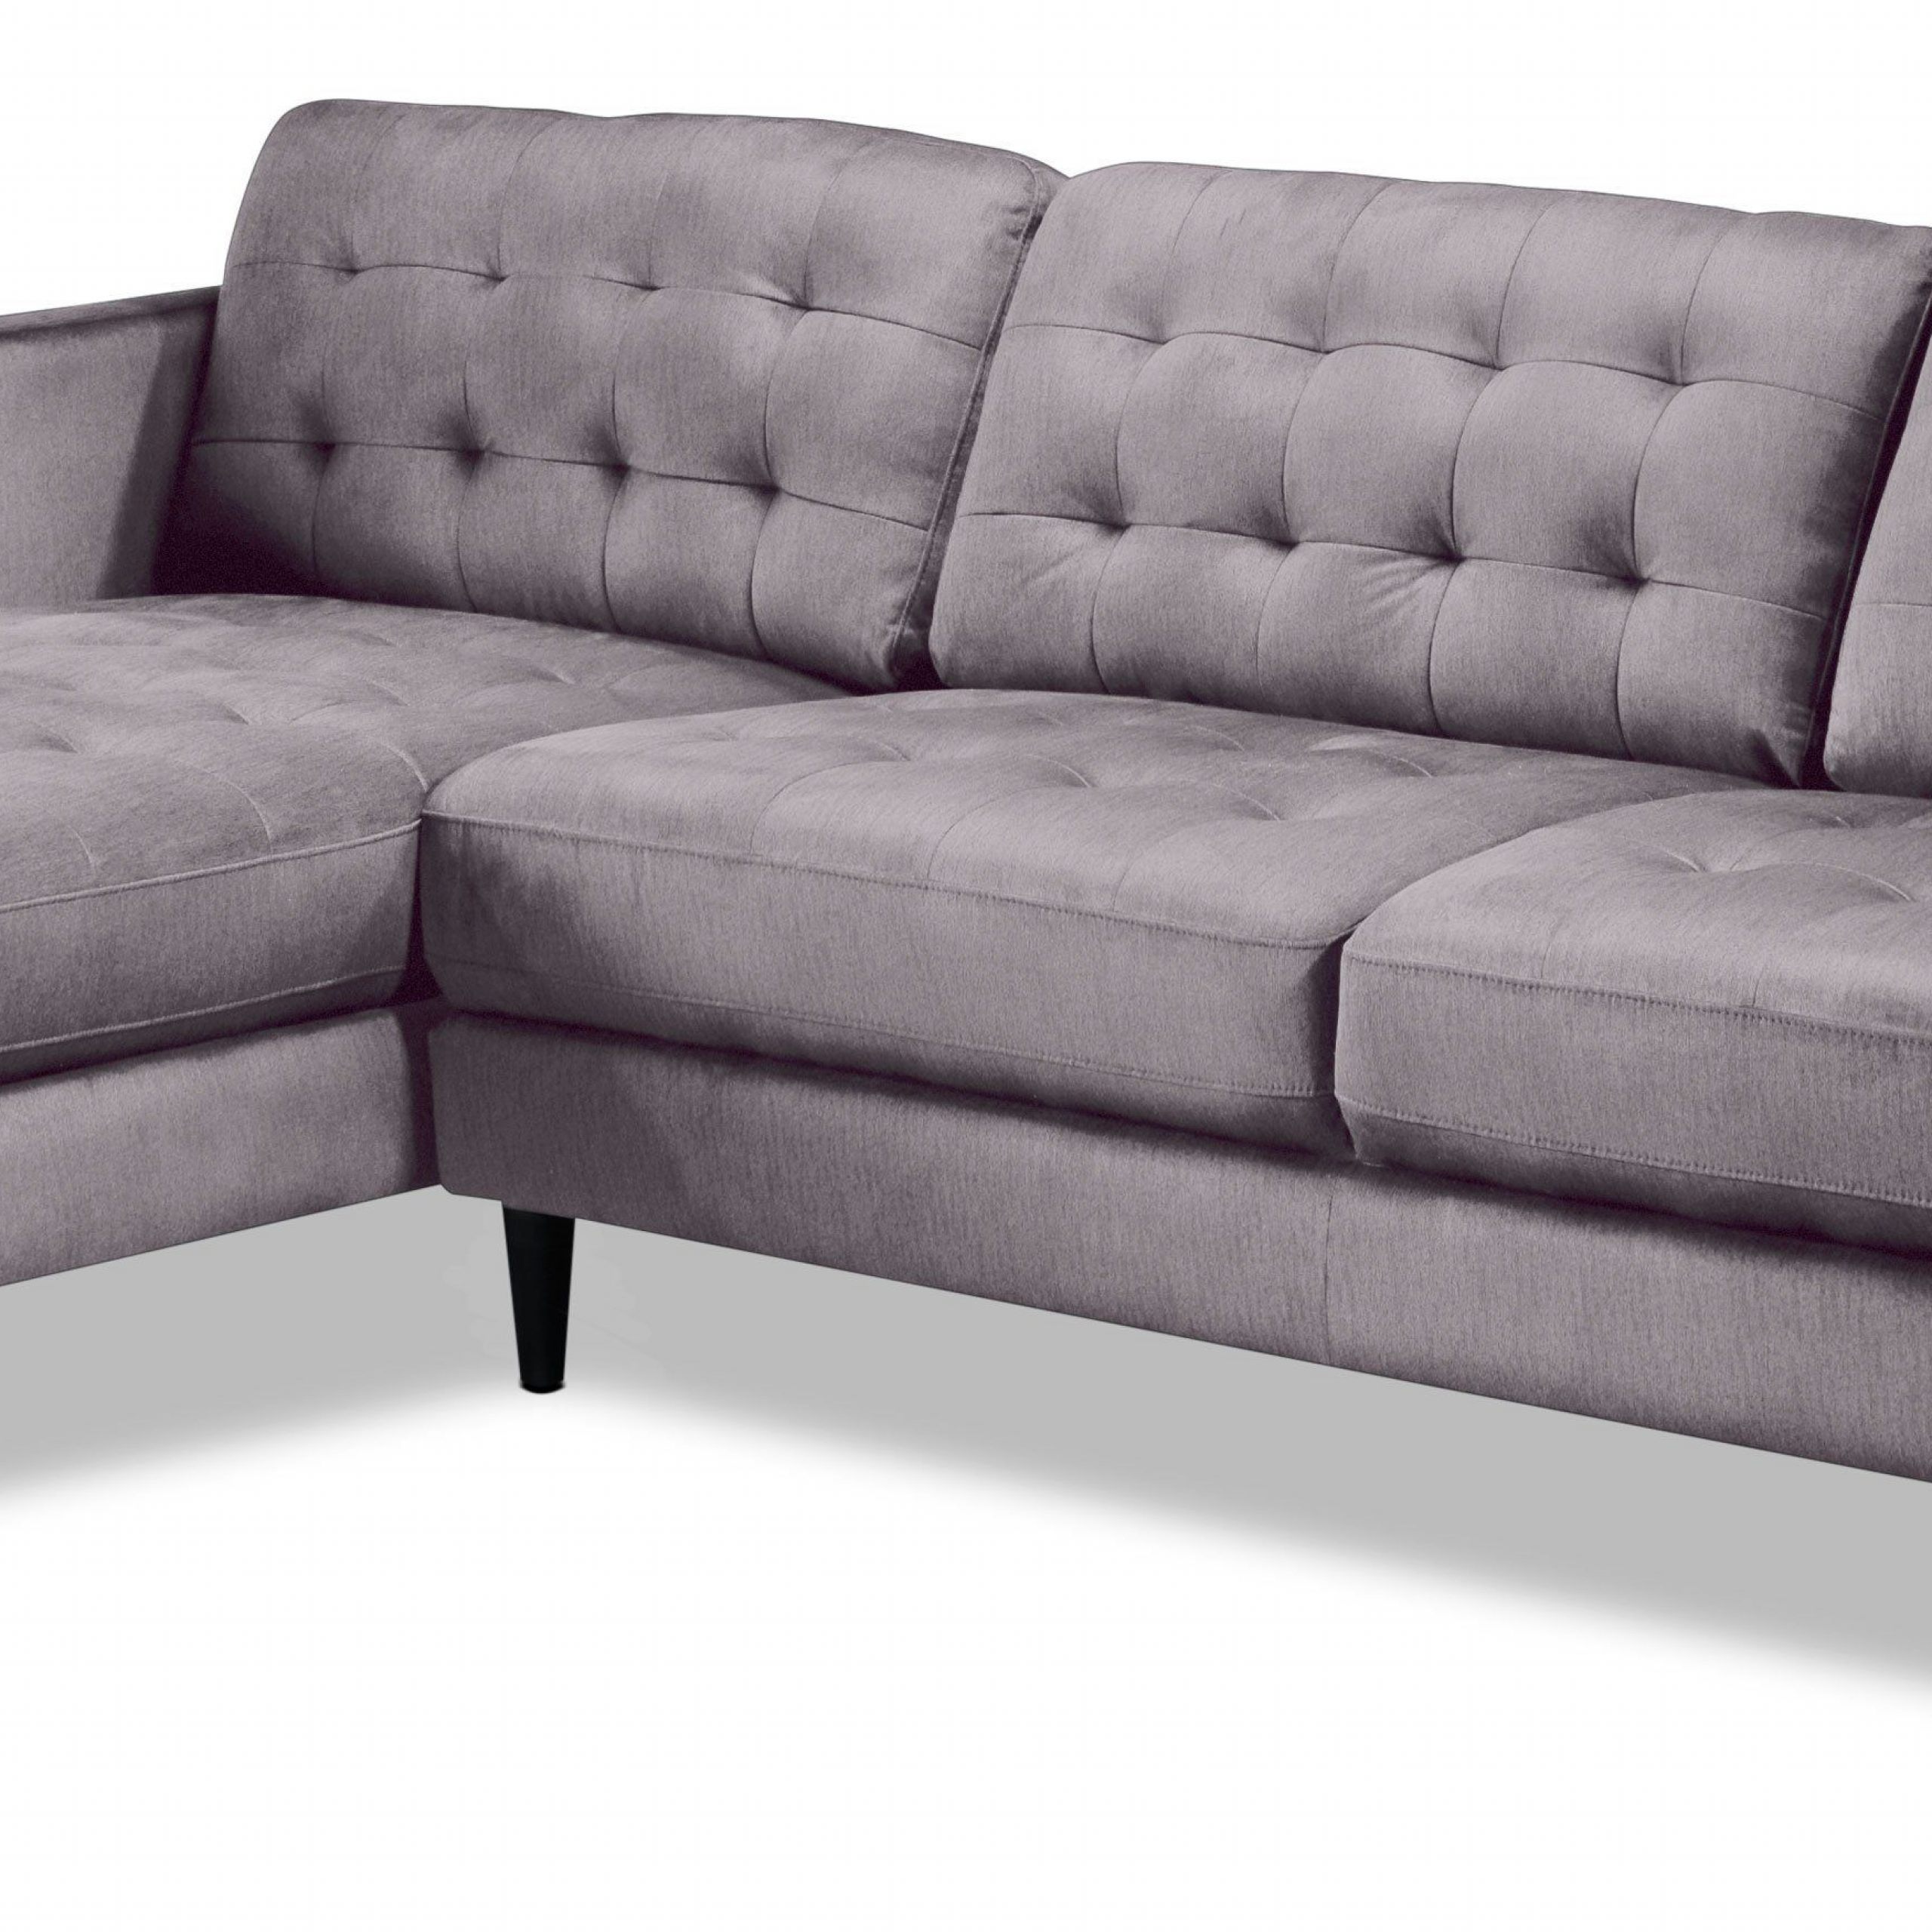 Paragon 2 Piece Sectional With Right Facing Chaise – Light In Newest Dulce Mid Century Chaise Sofas Light Gray (View 3 of 20)